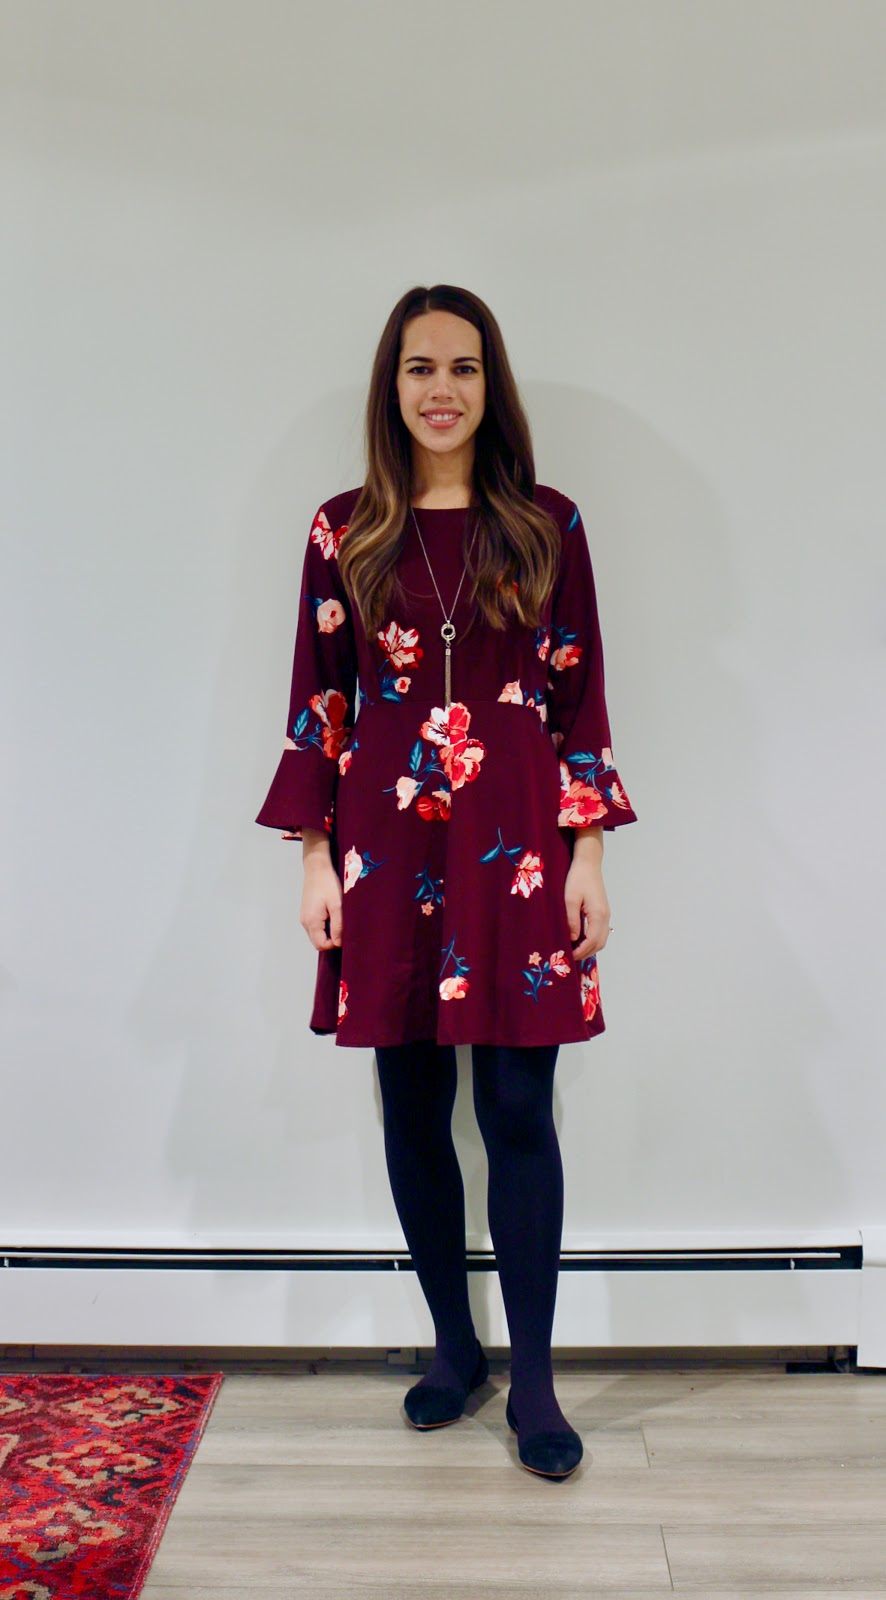 Jules in Flats - Burgundy Floral Fit & Flare Dress (Business Casual Fall Workwear on a Budget)